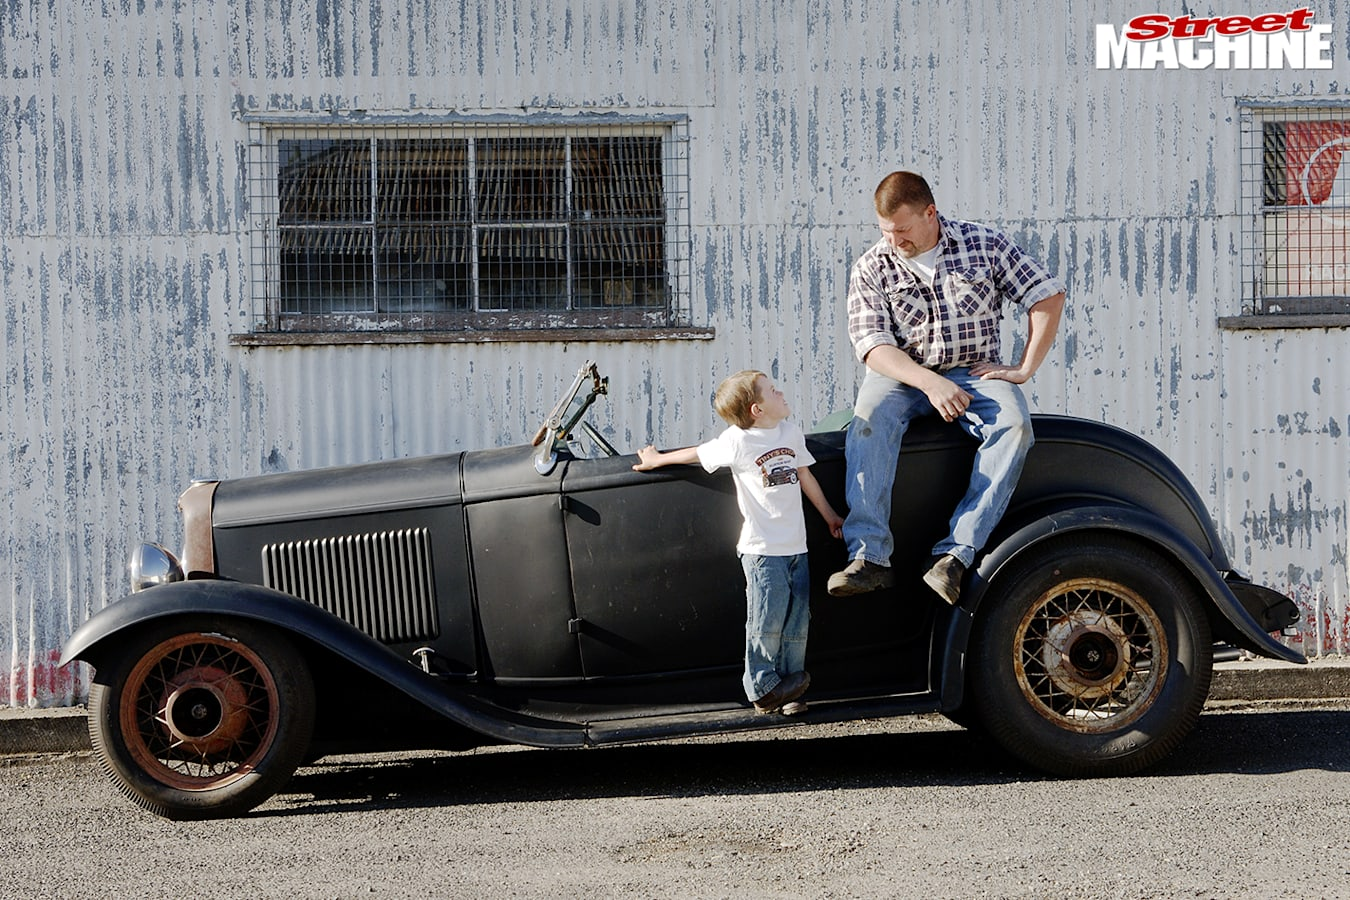 Street Machine Features Townsend Family Hot Rods 5